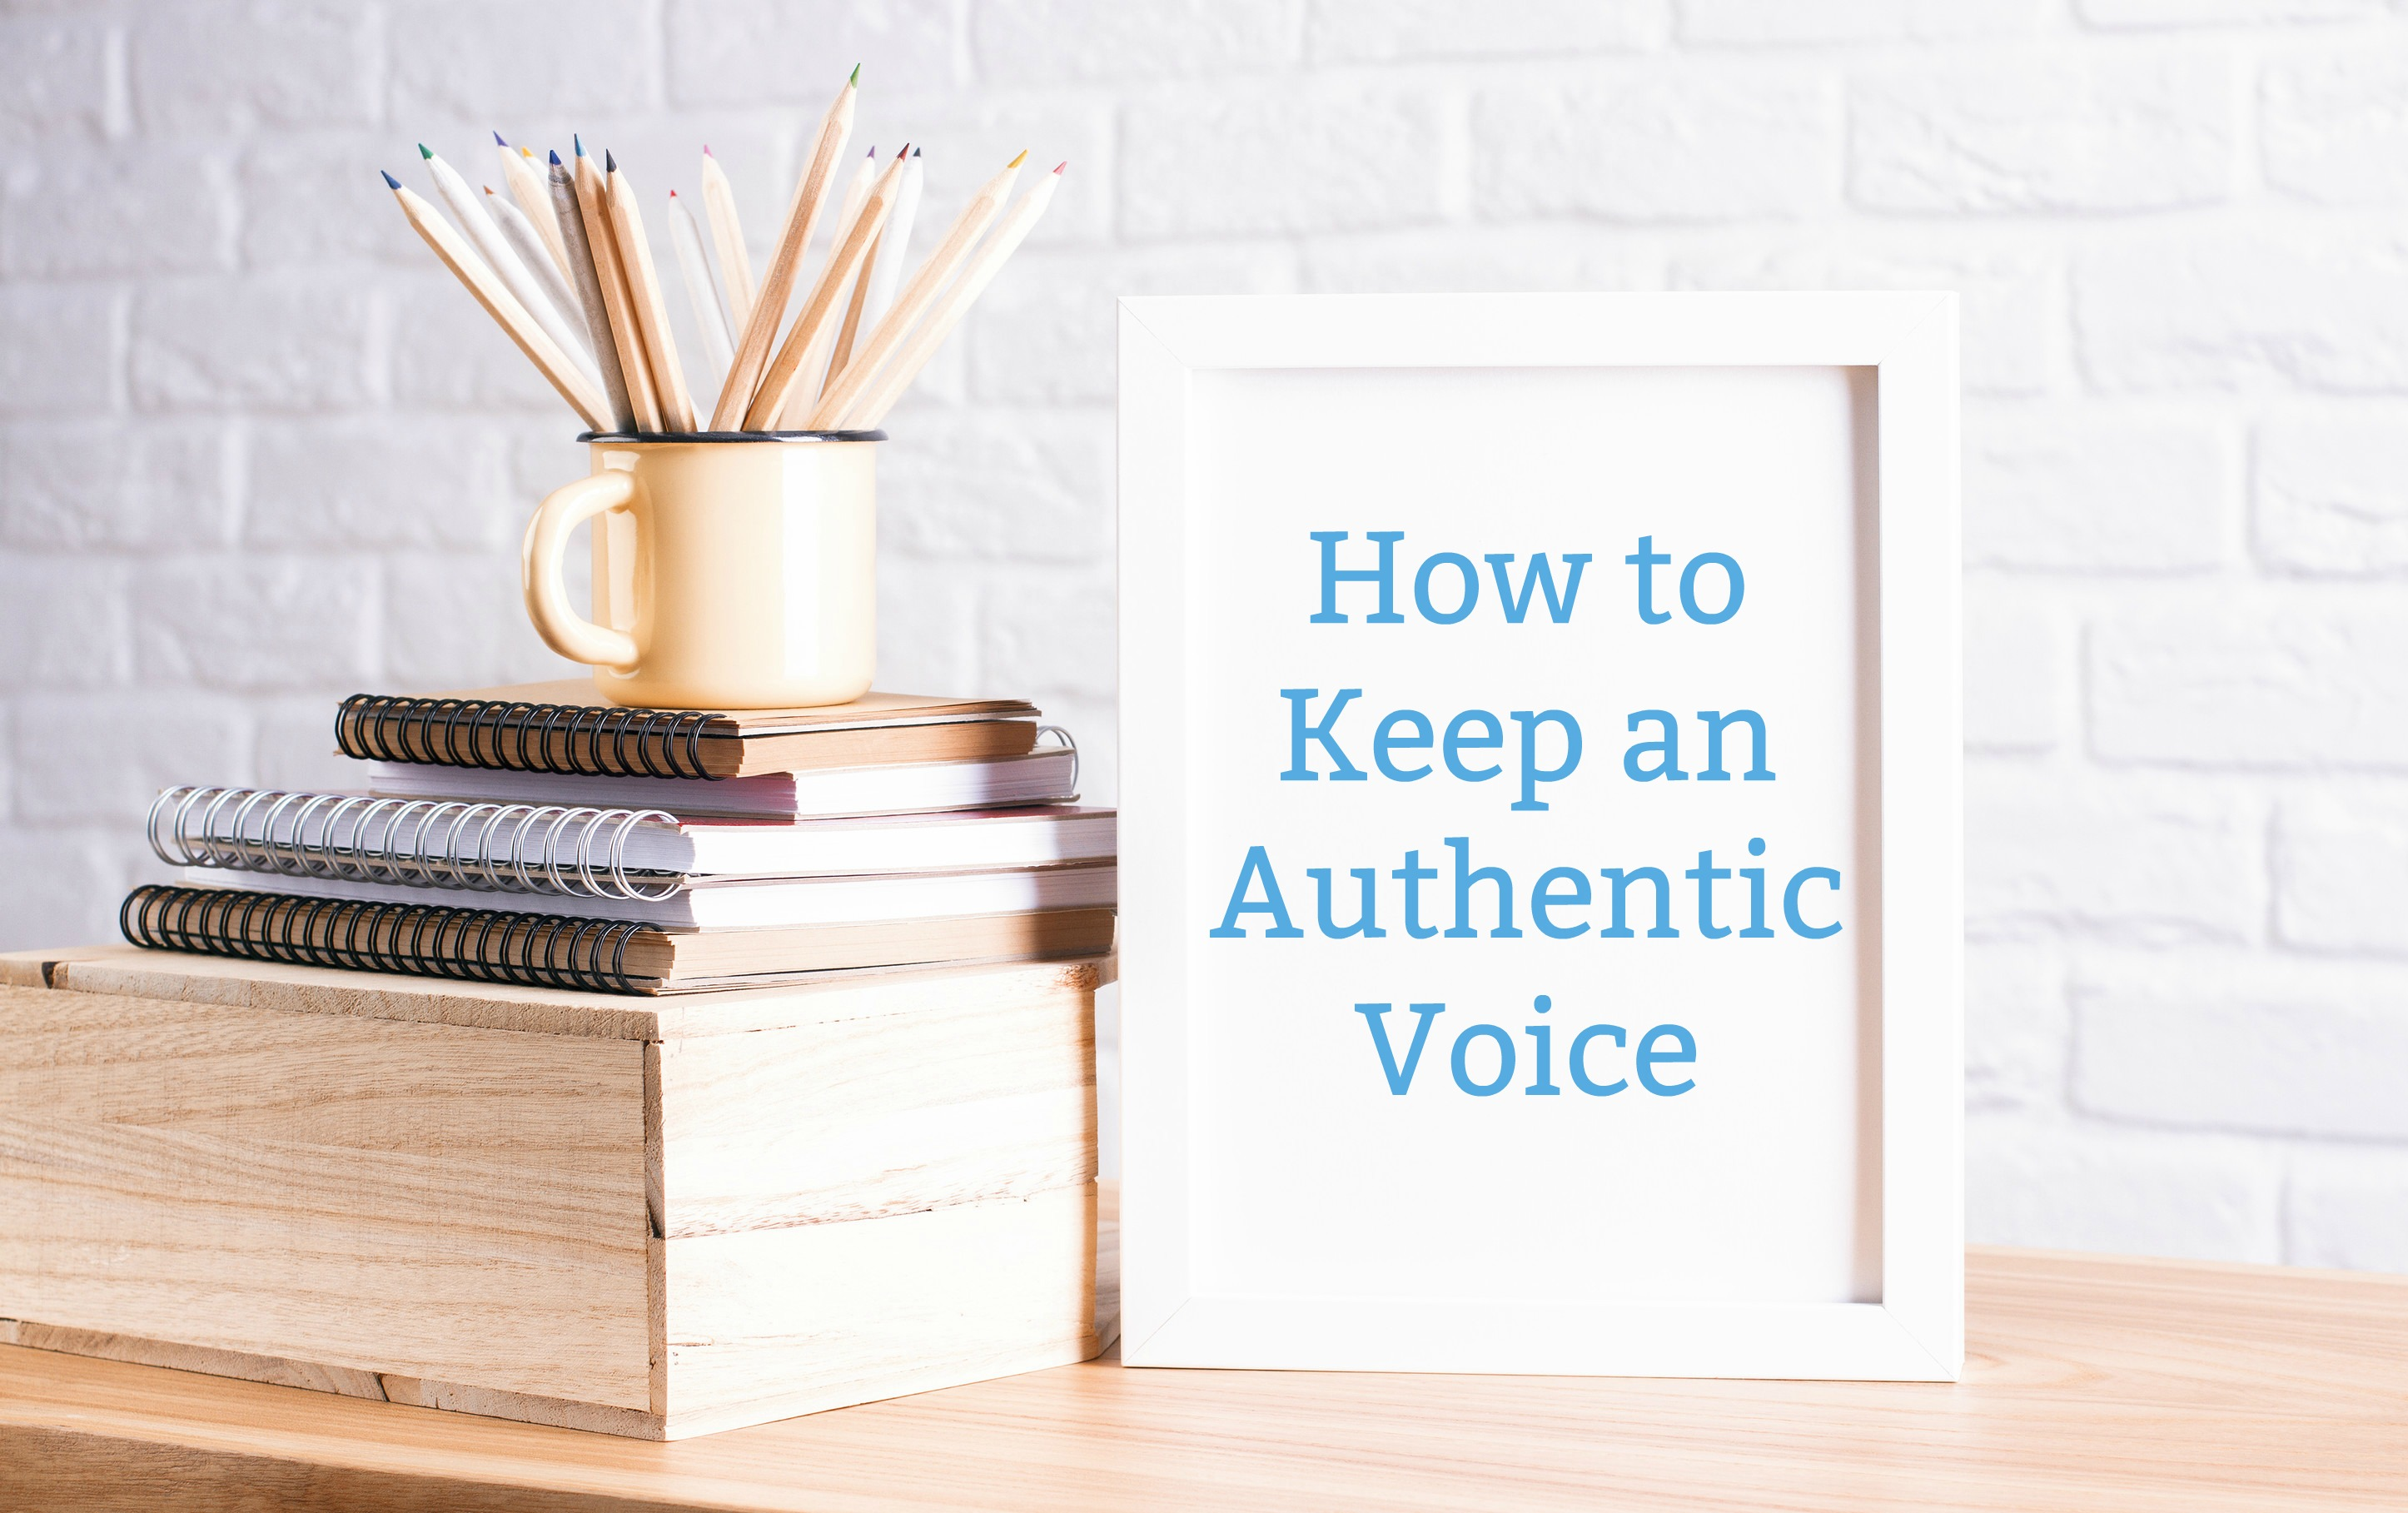 How to Keep an Authentic Voice, blogging tips